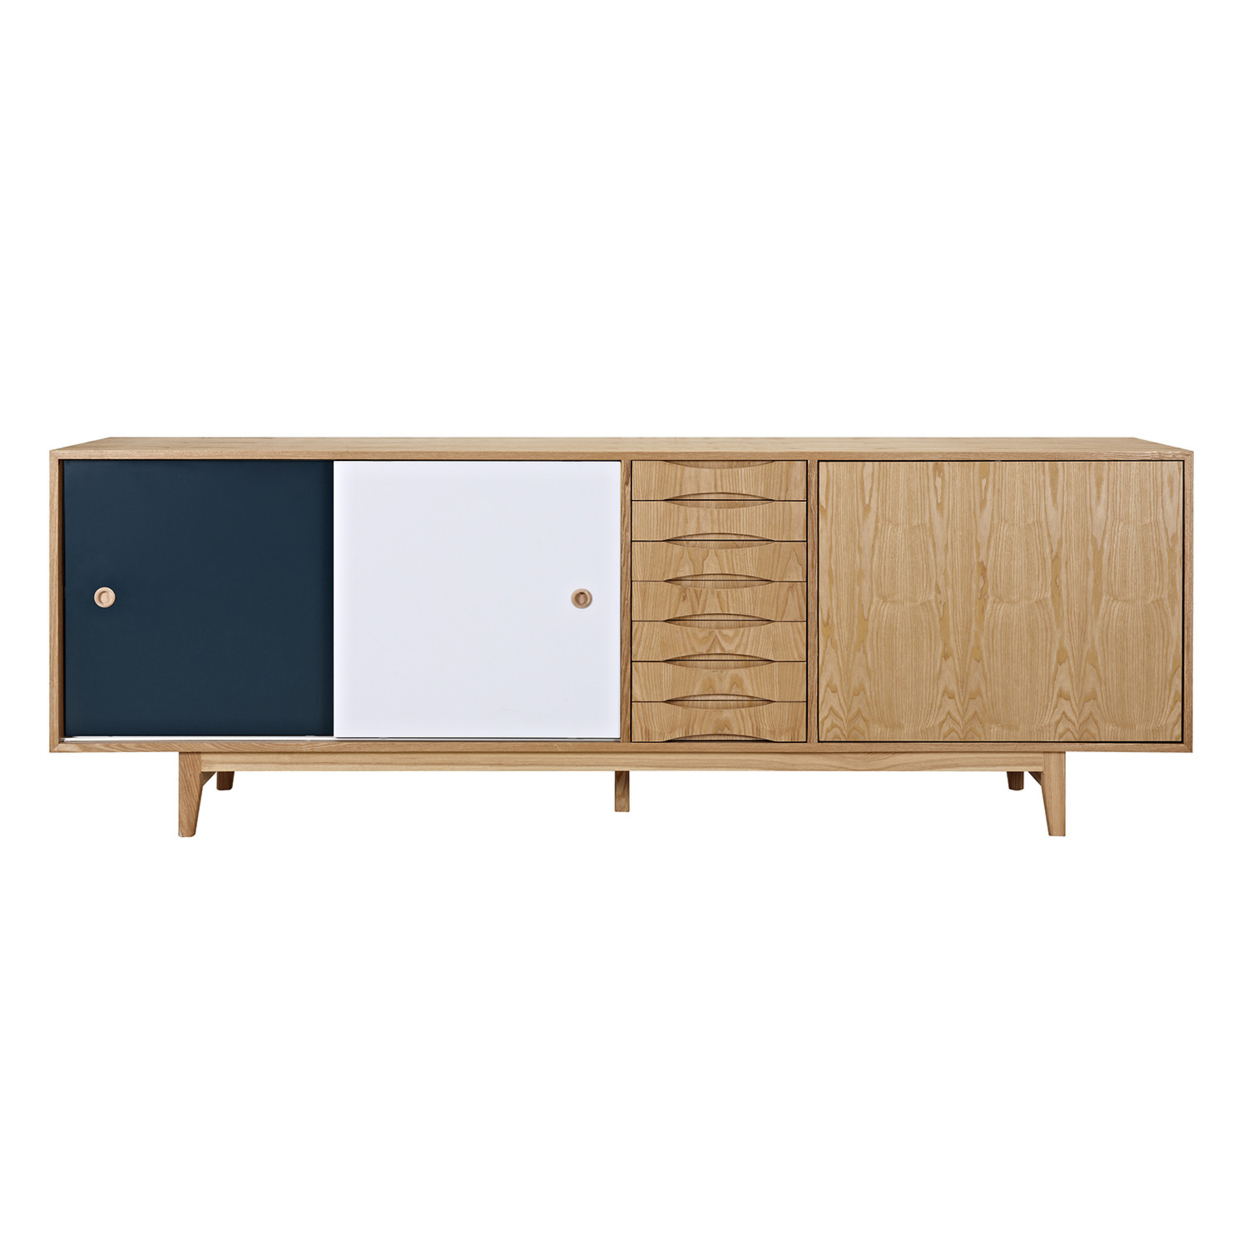 Teal and Blue Alma Sideboard- Natural